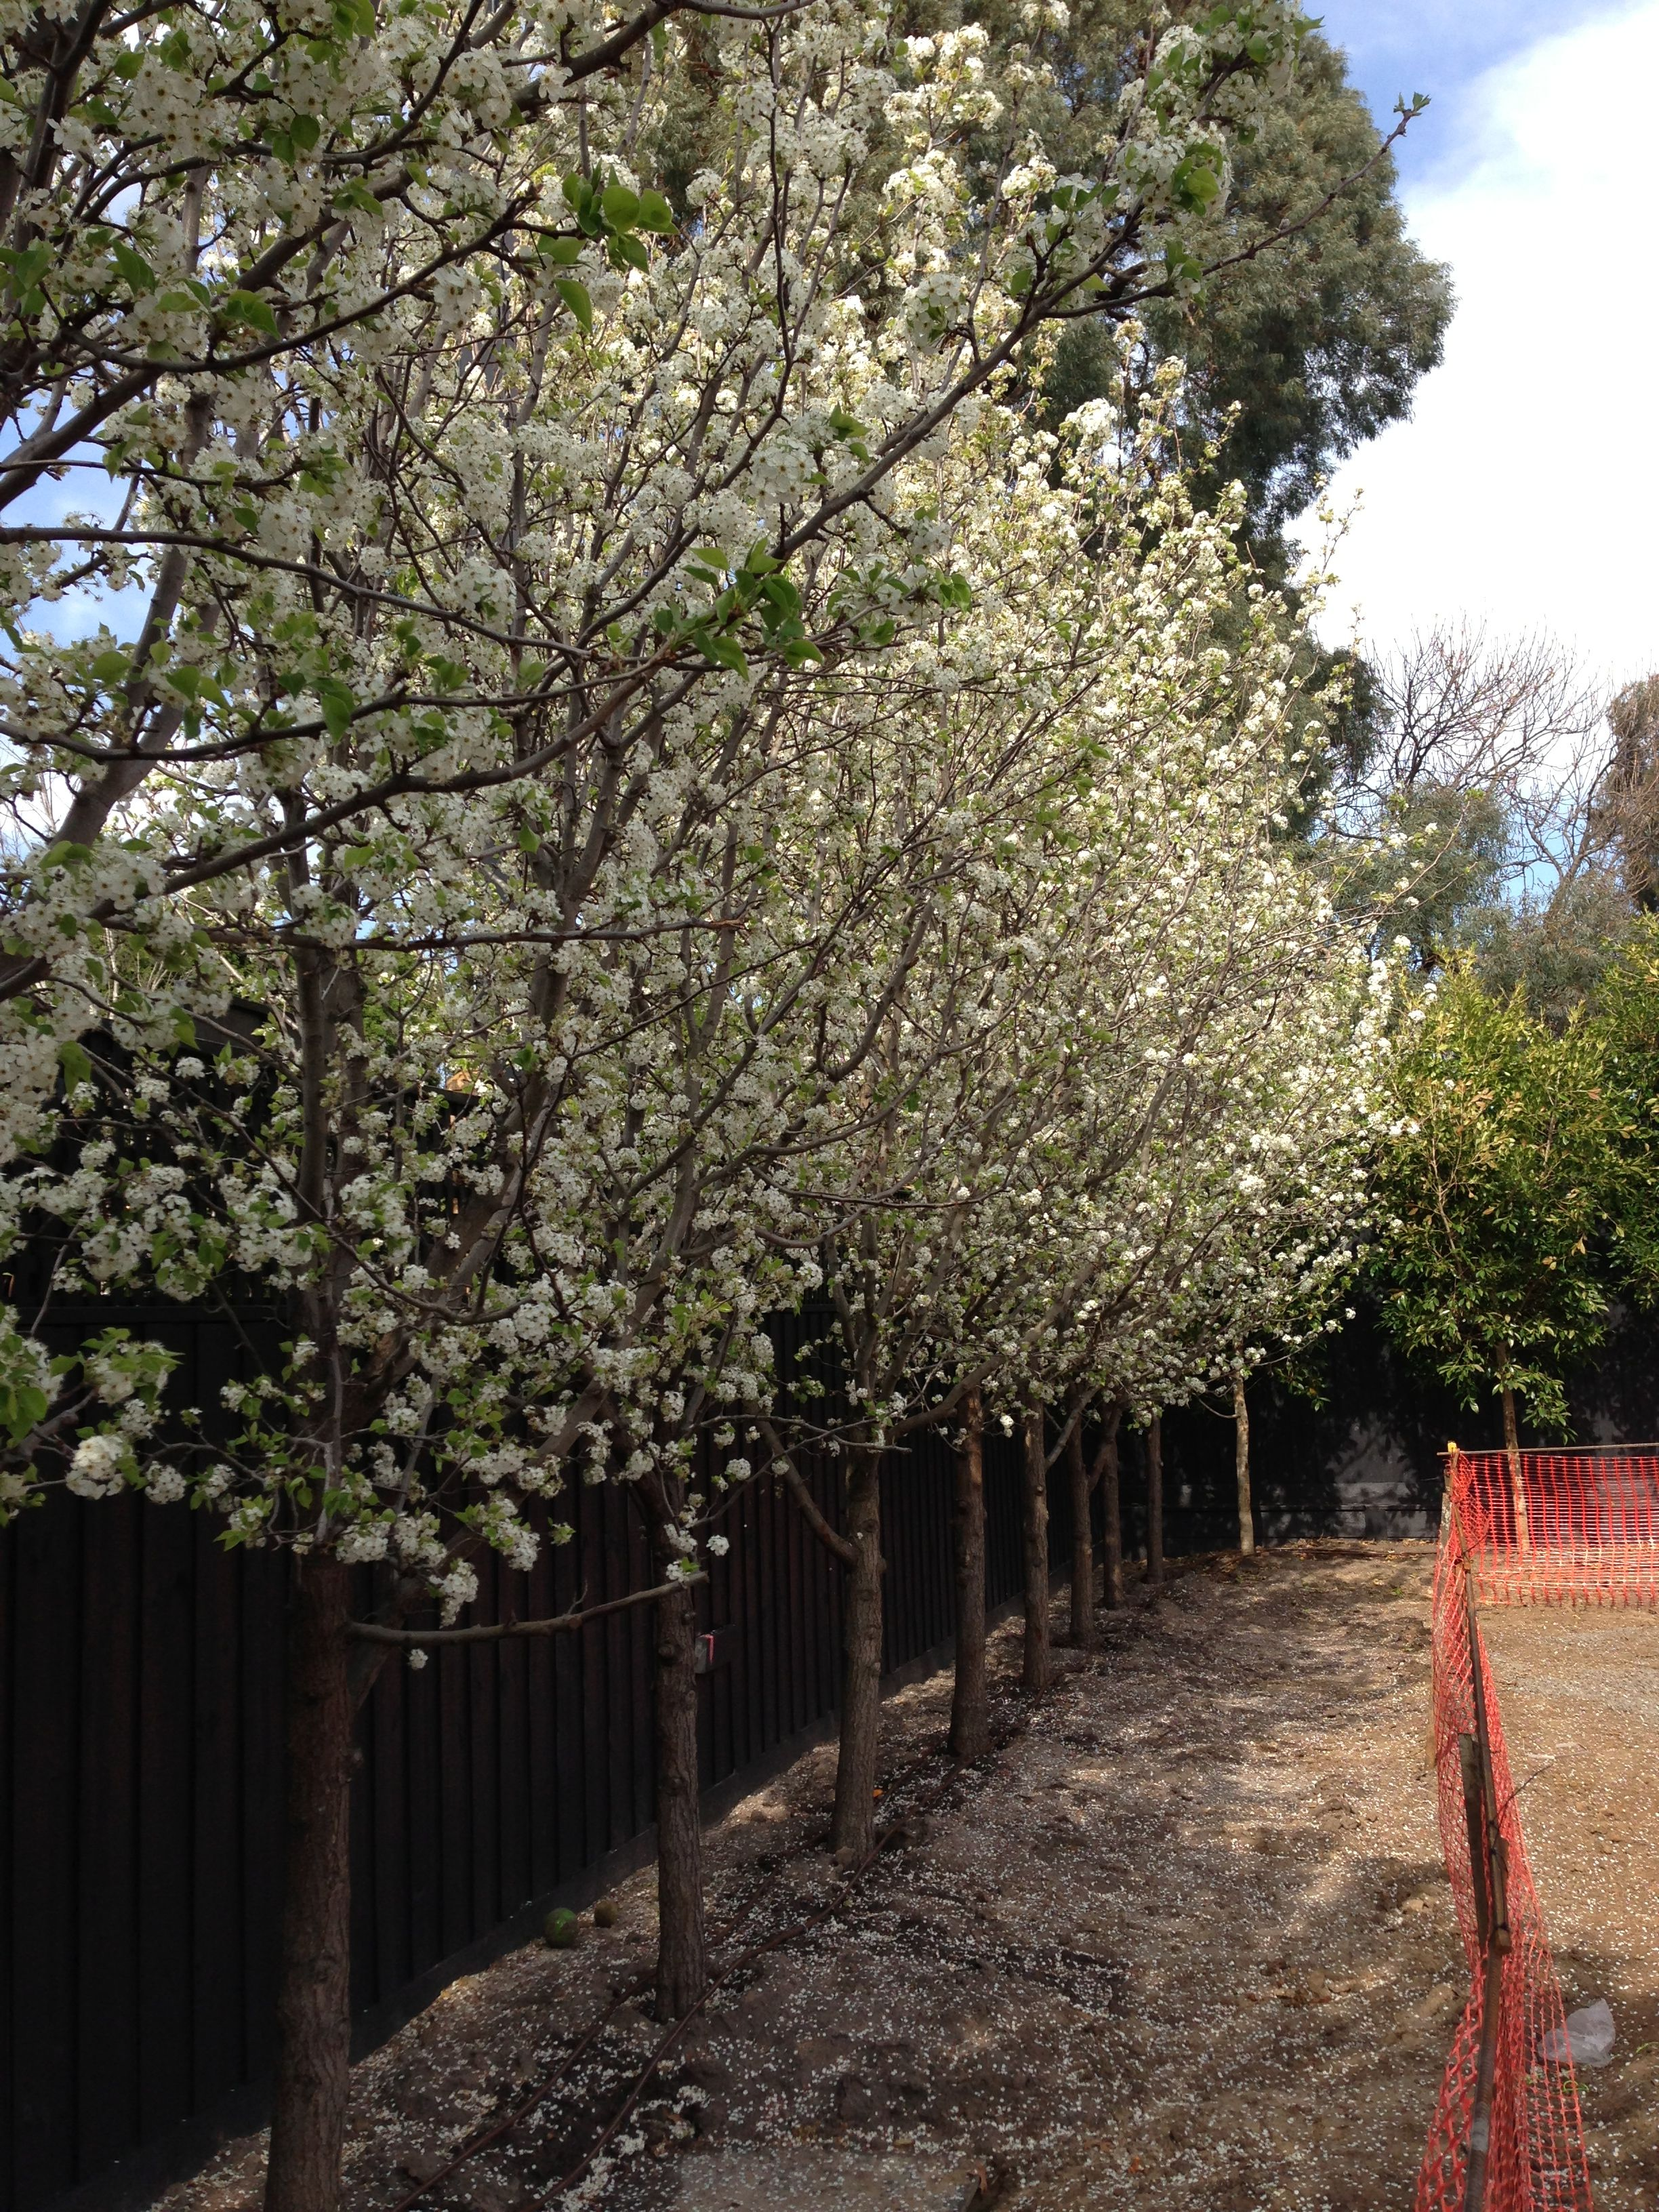 Manchurian Pear trees in Spring Ornamental pear tree